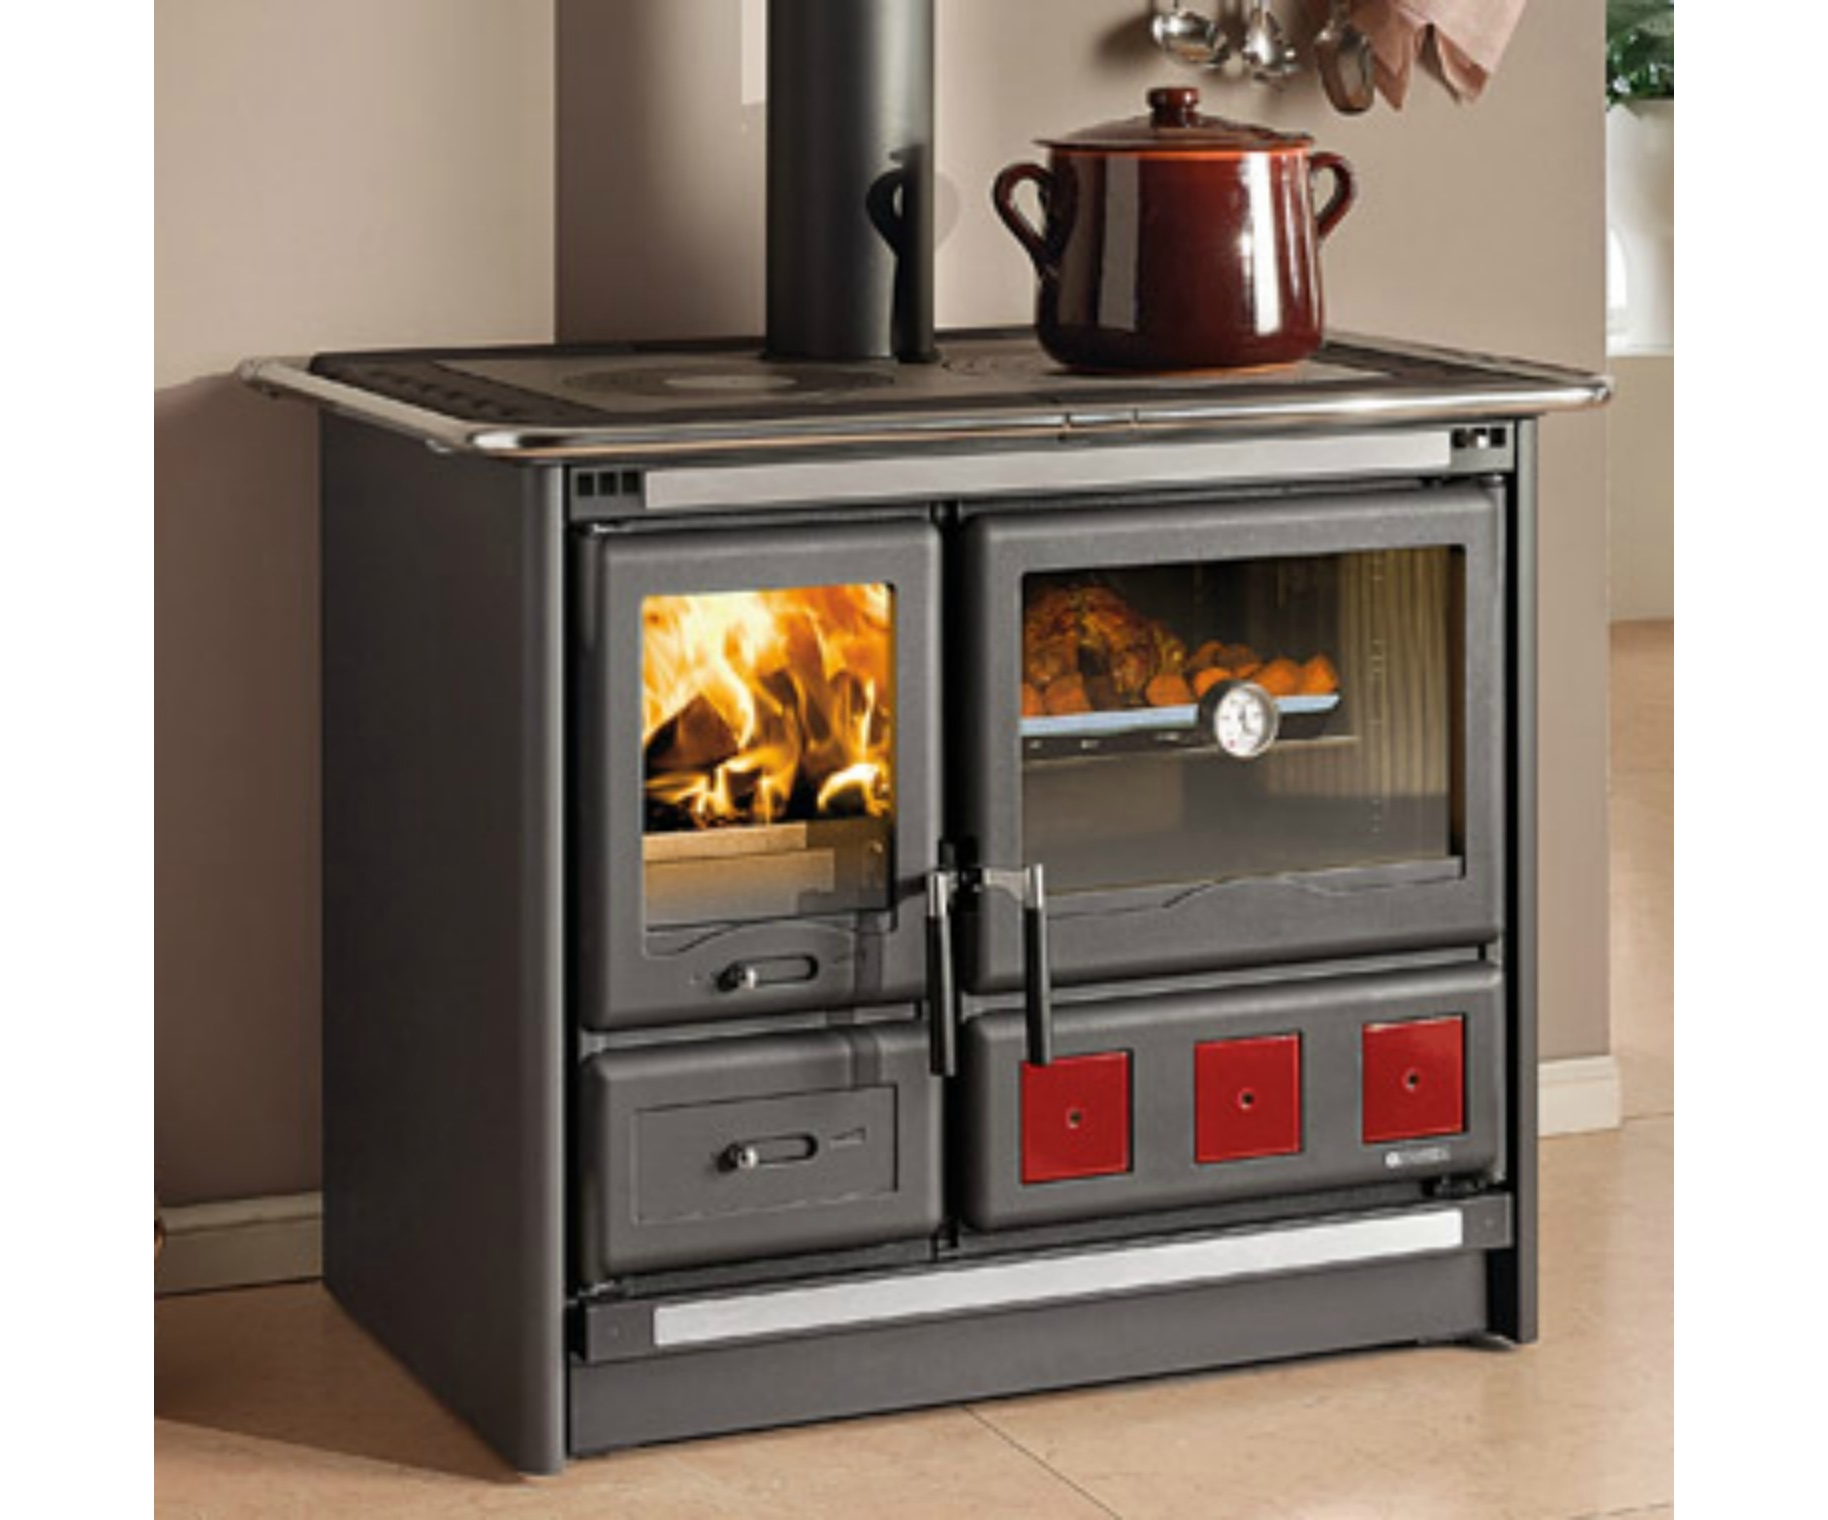 La nordica rosa xxl wood burning cooker at stove sellers - Aga cucine prezzi ...